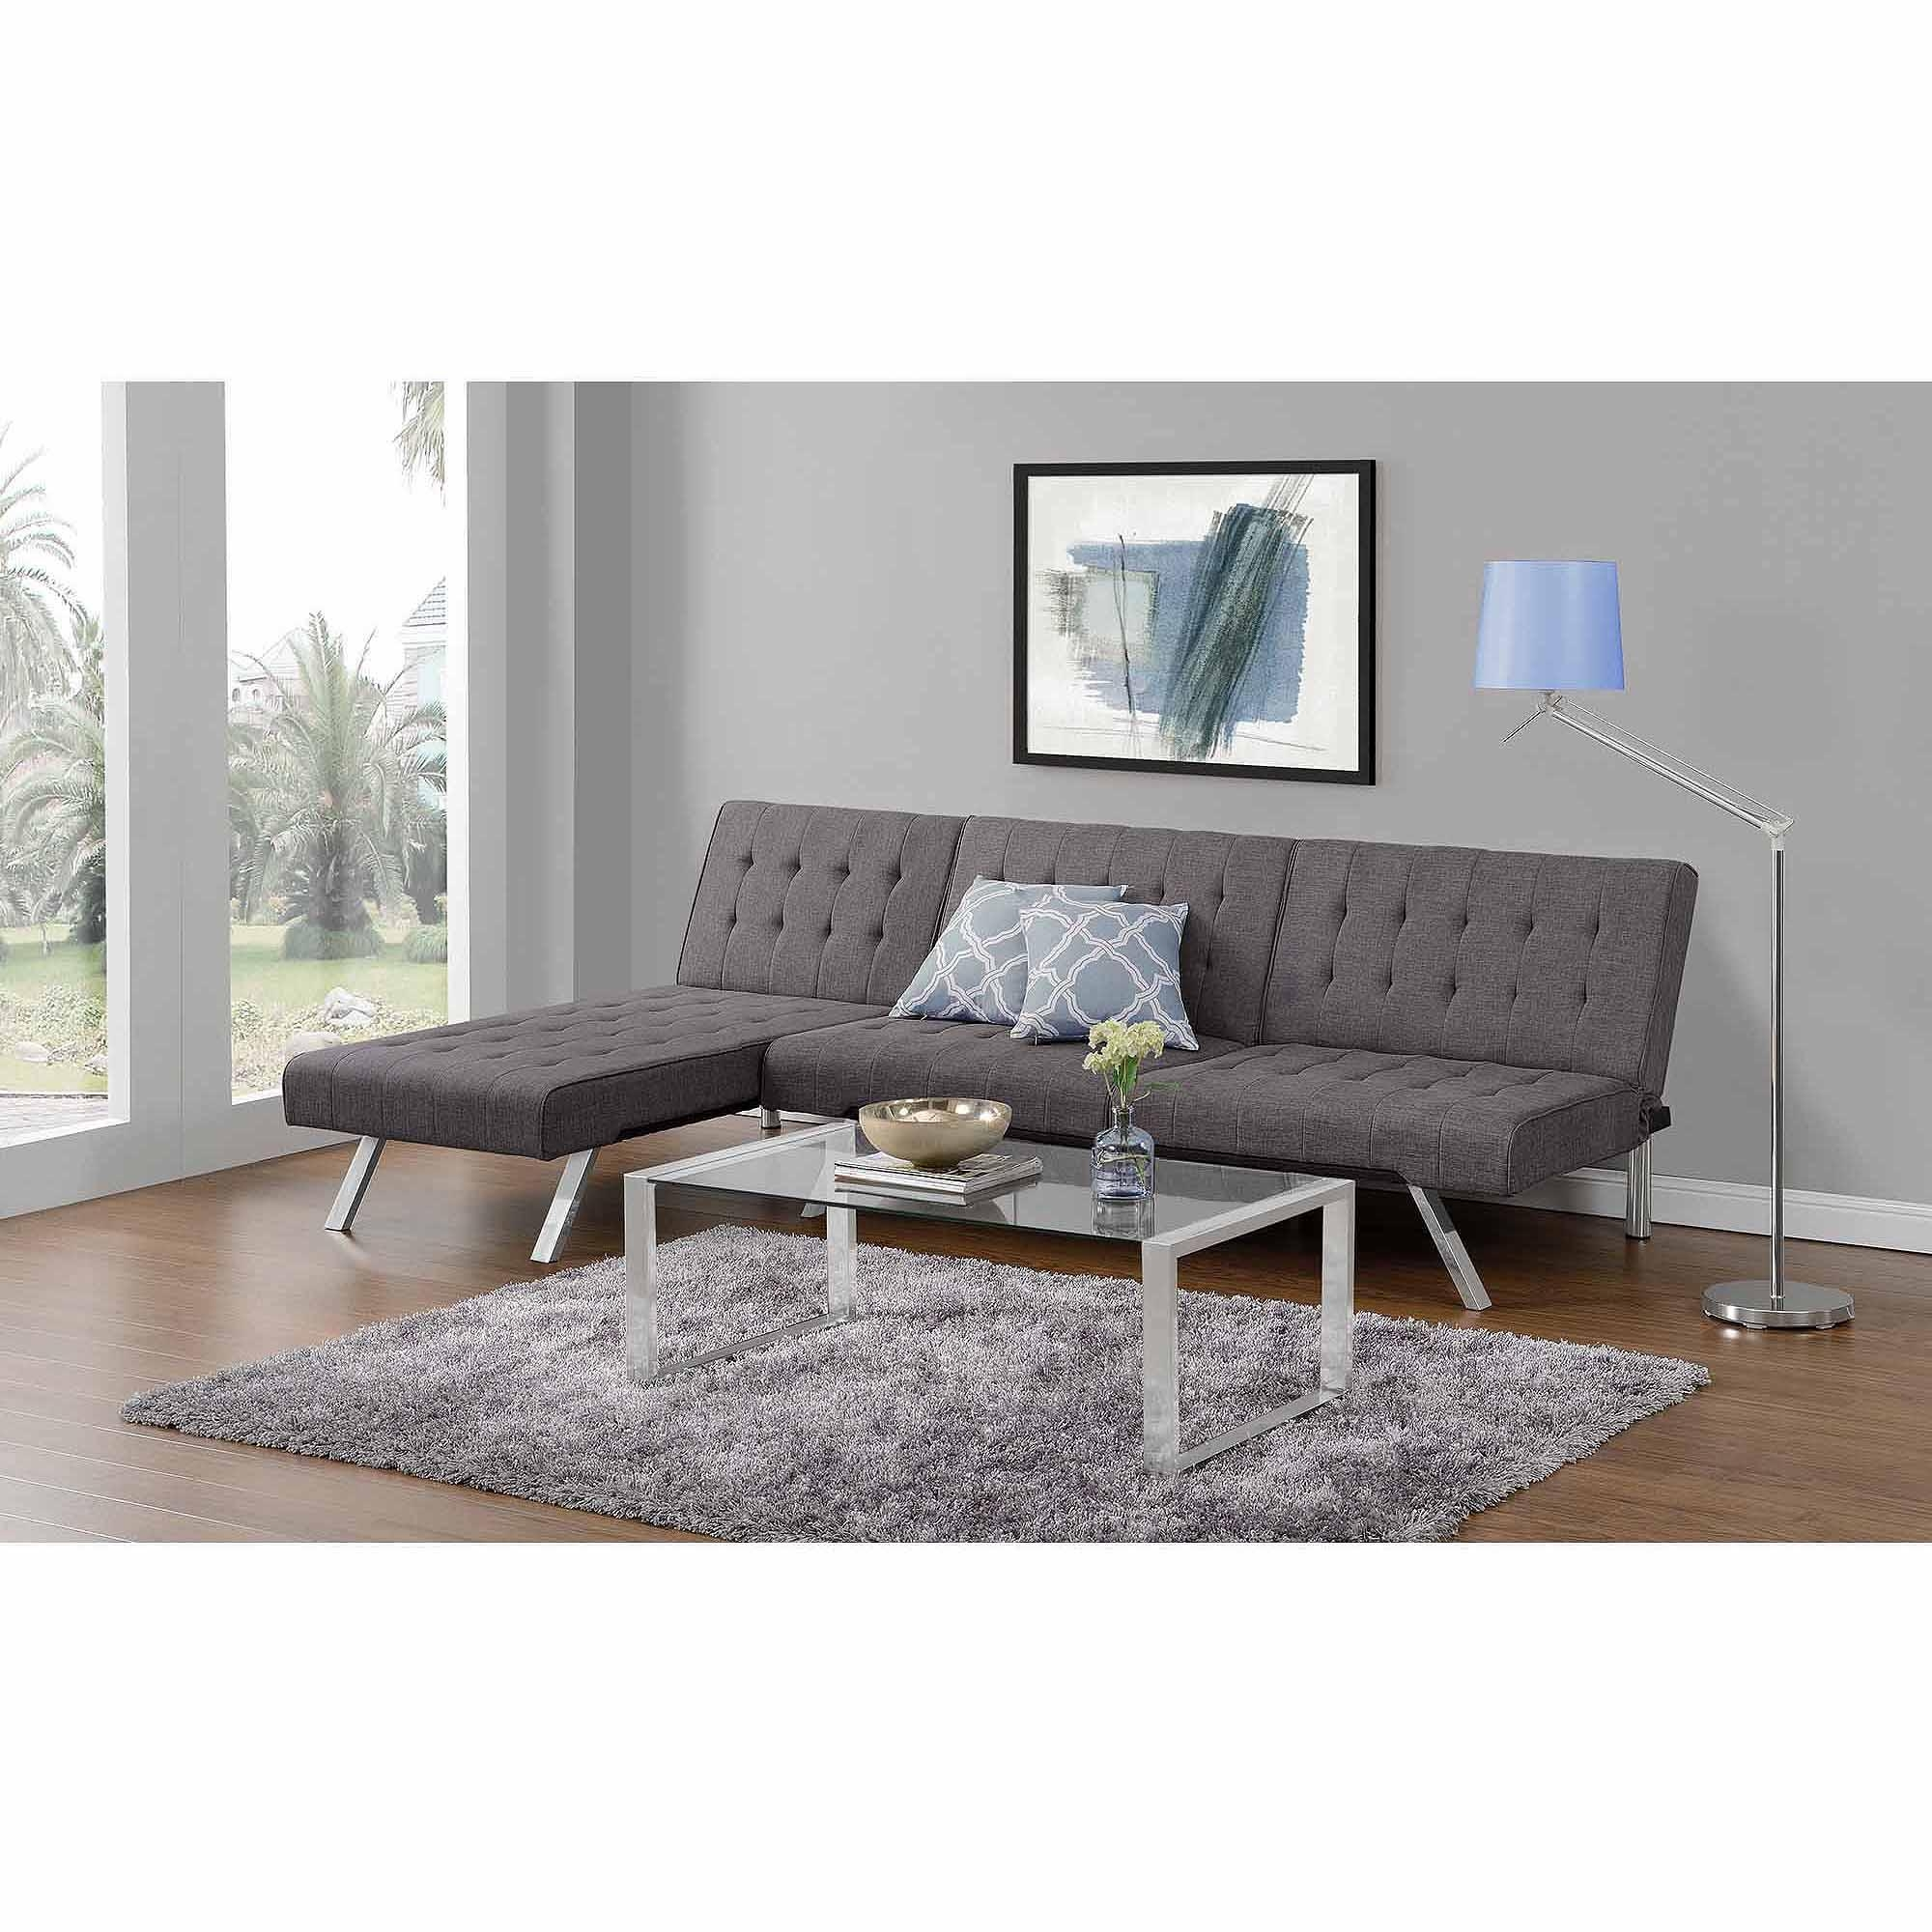 Emily Futon Chaise Lounger, Multiple Colors – Walmart Pertaining To Emily Sofas (View 3 of 20)